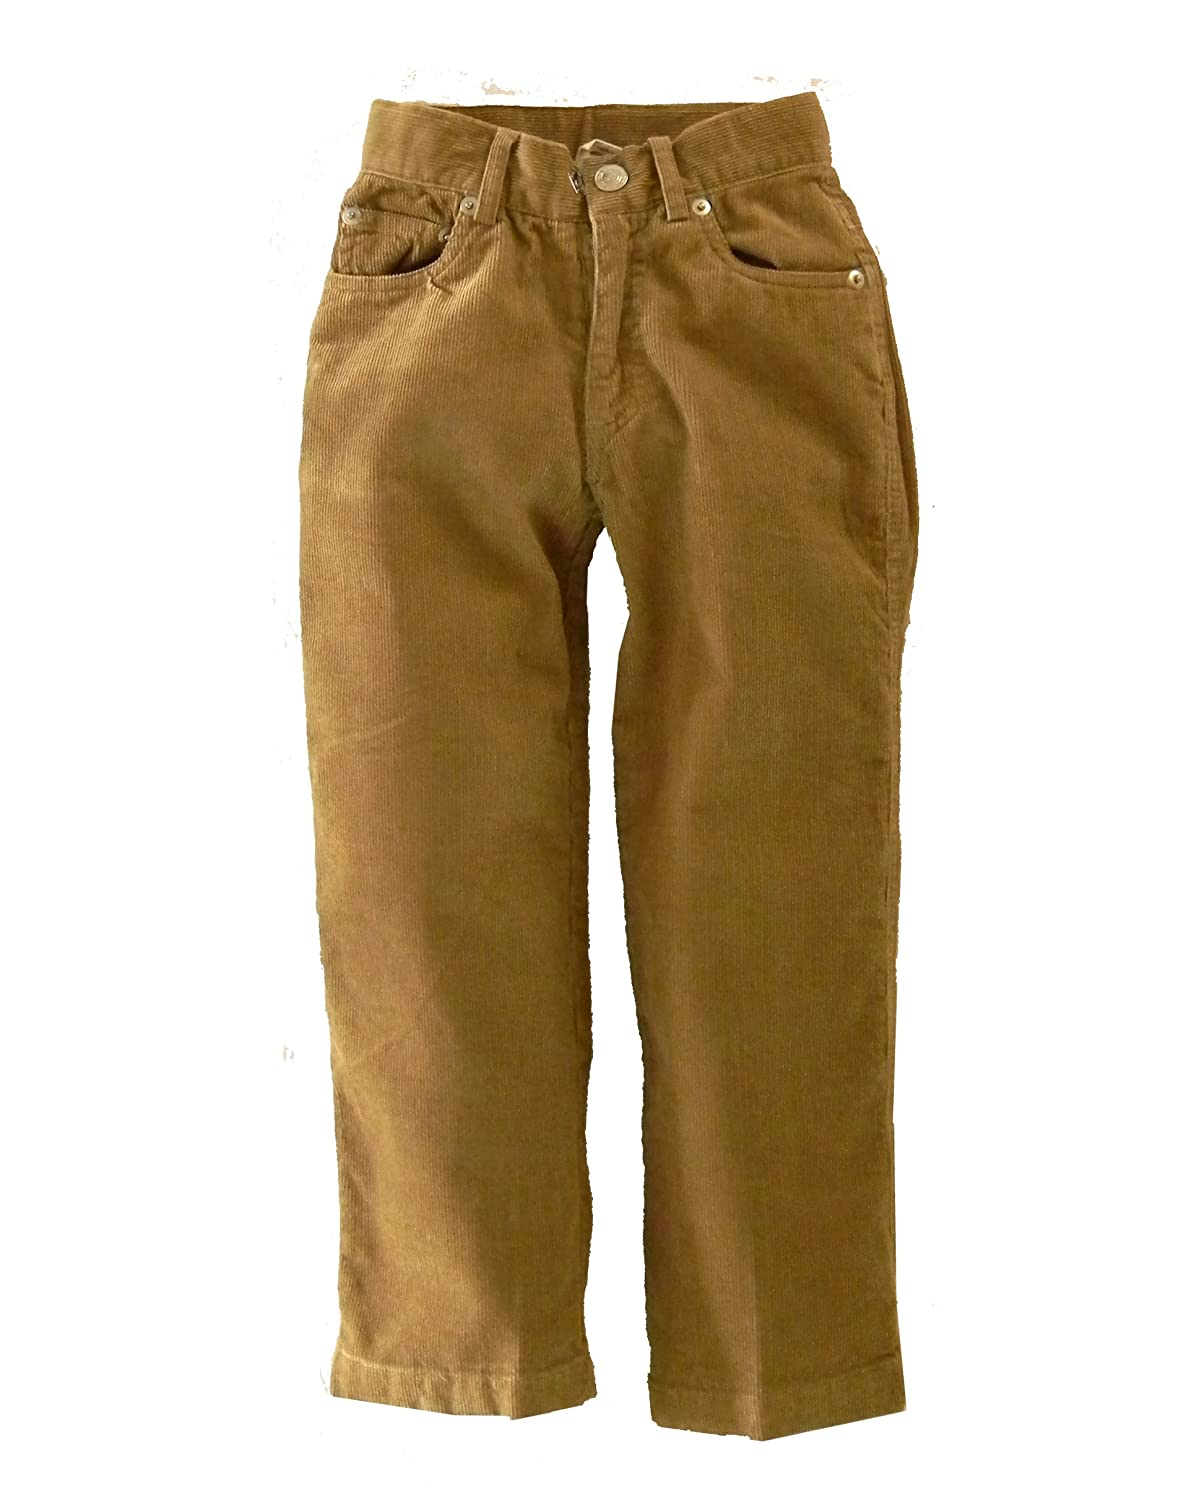 Wes and Willy City College Little Boys Corduroy Pants